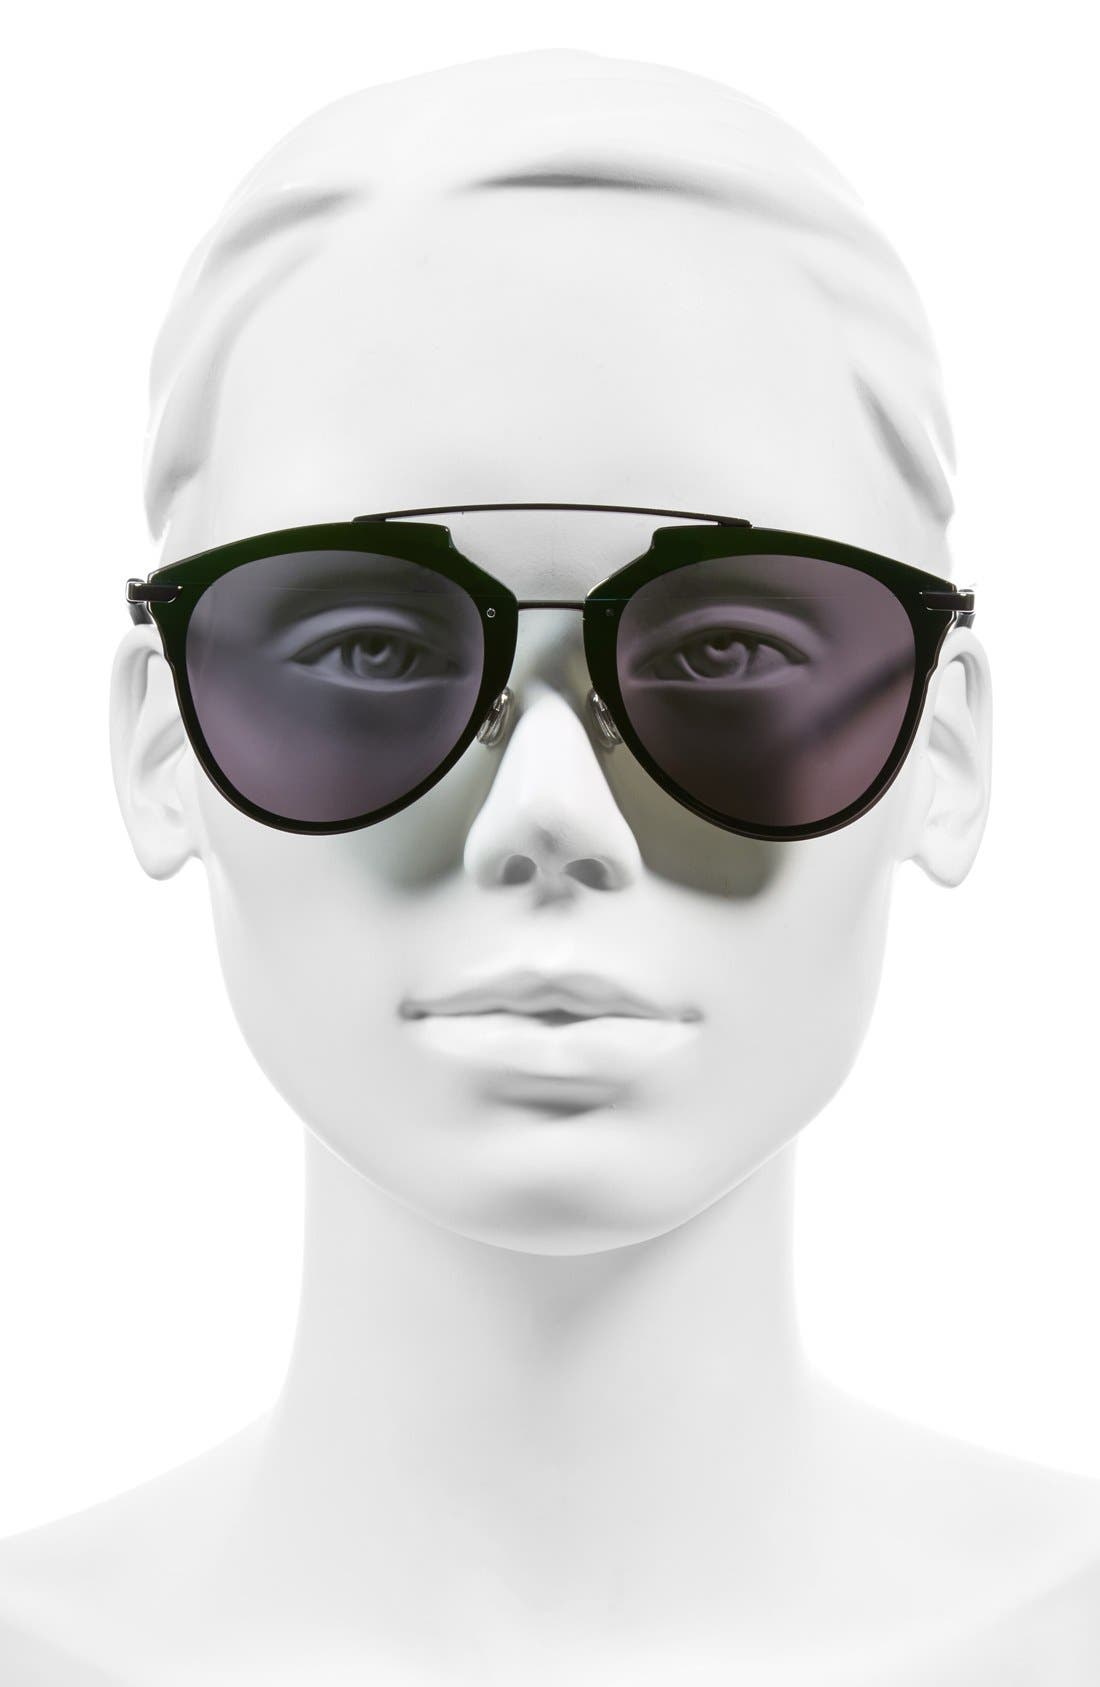 Reflected Prism 63mm Oversize Mirrored Brow Bar Sunglasses,                             Alternate thumbnail 2, color,                             Dark Ruthenium/ Green